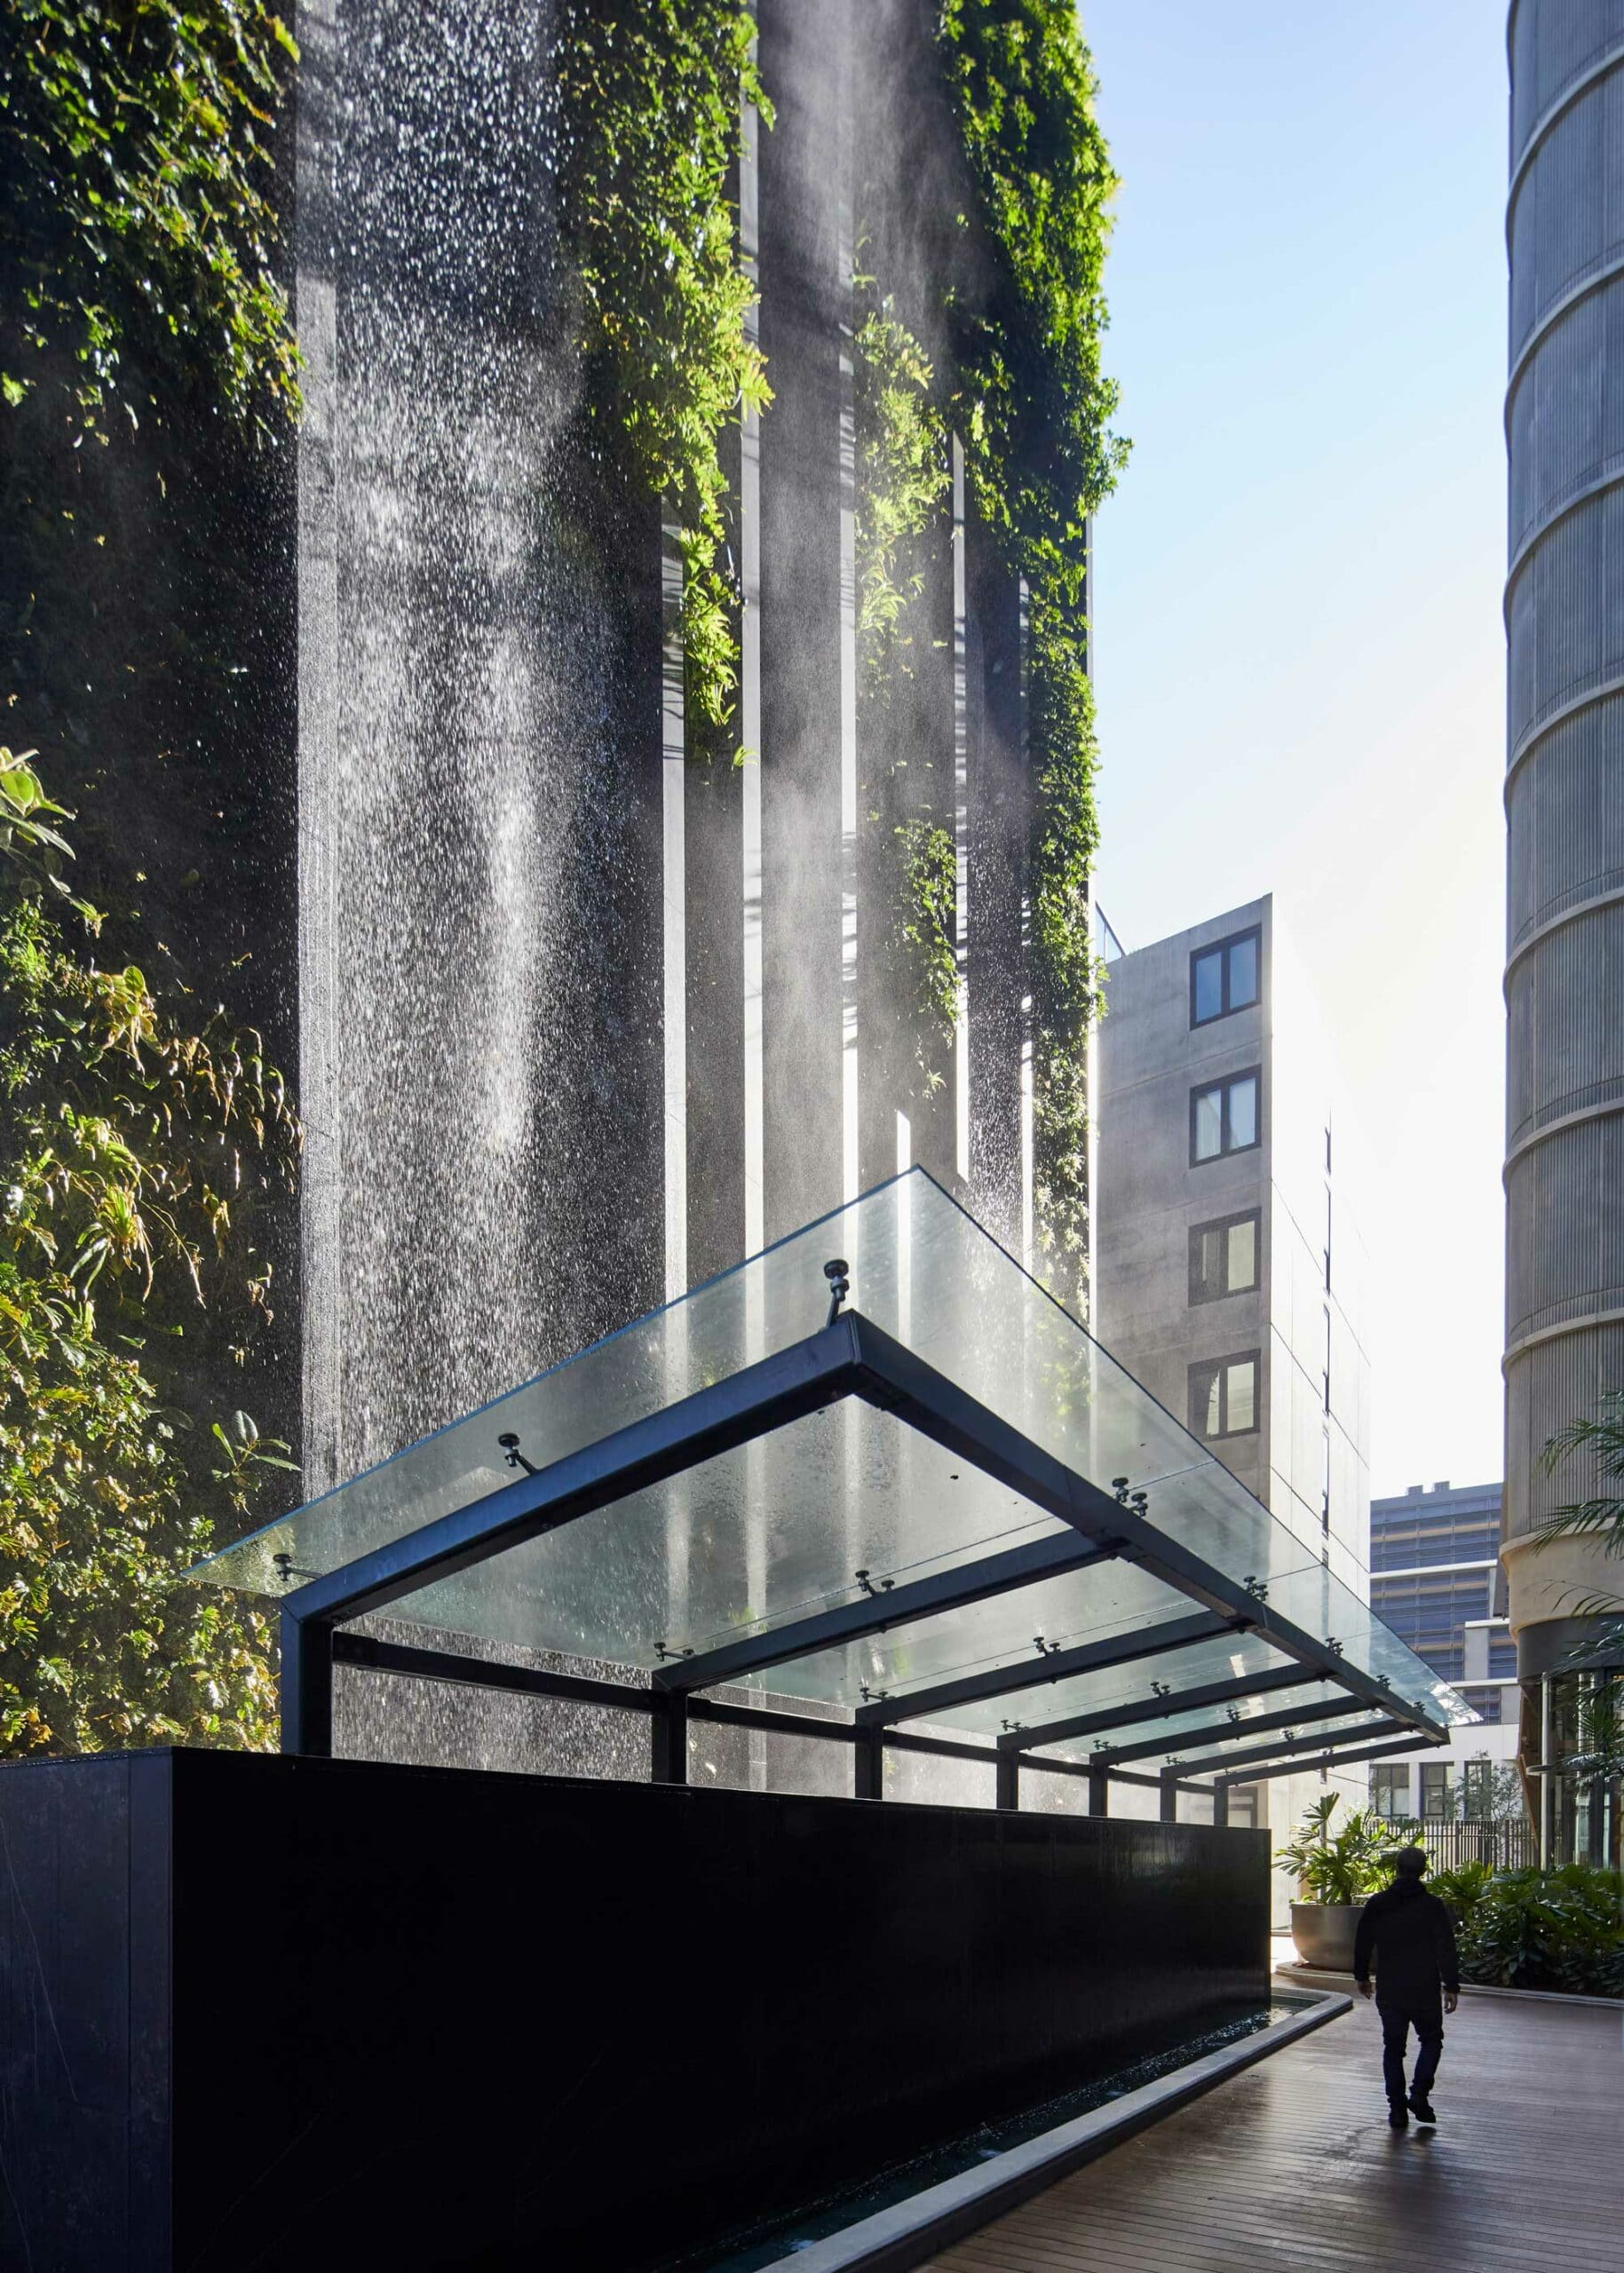 Urban waterfall  - Waterfall Dekton 1 scaled 167